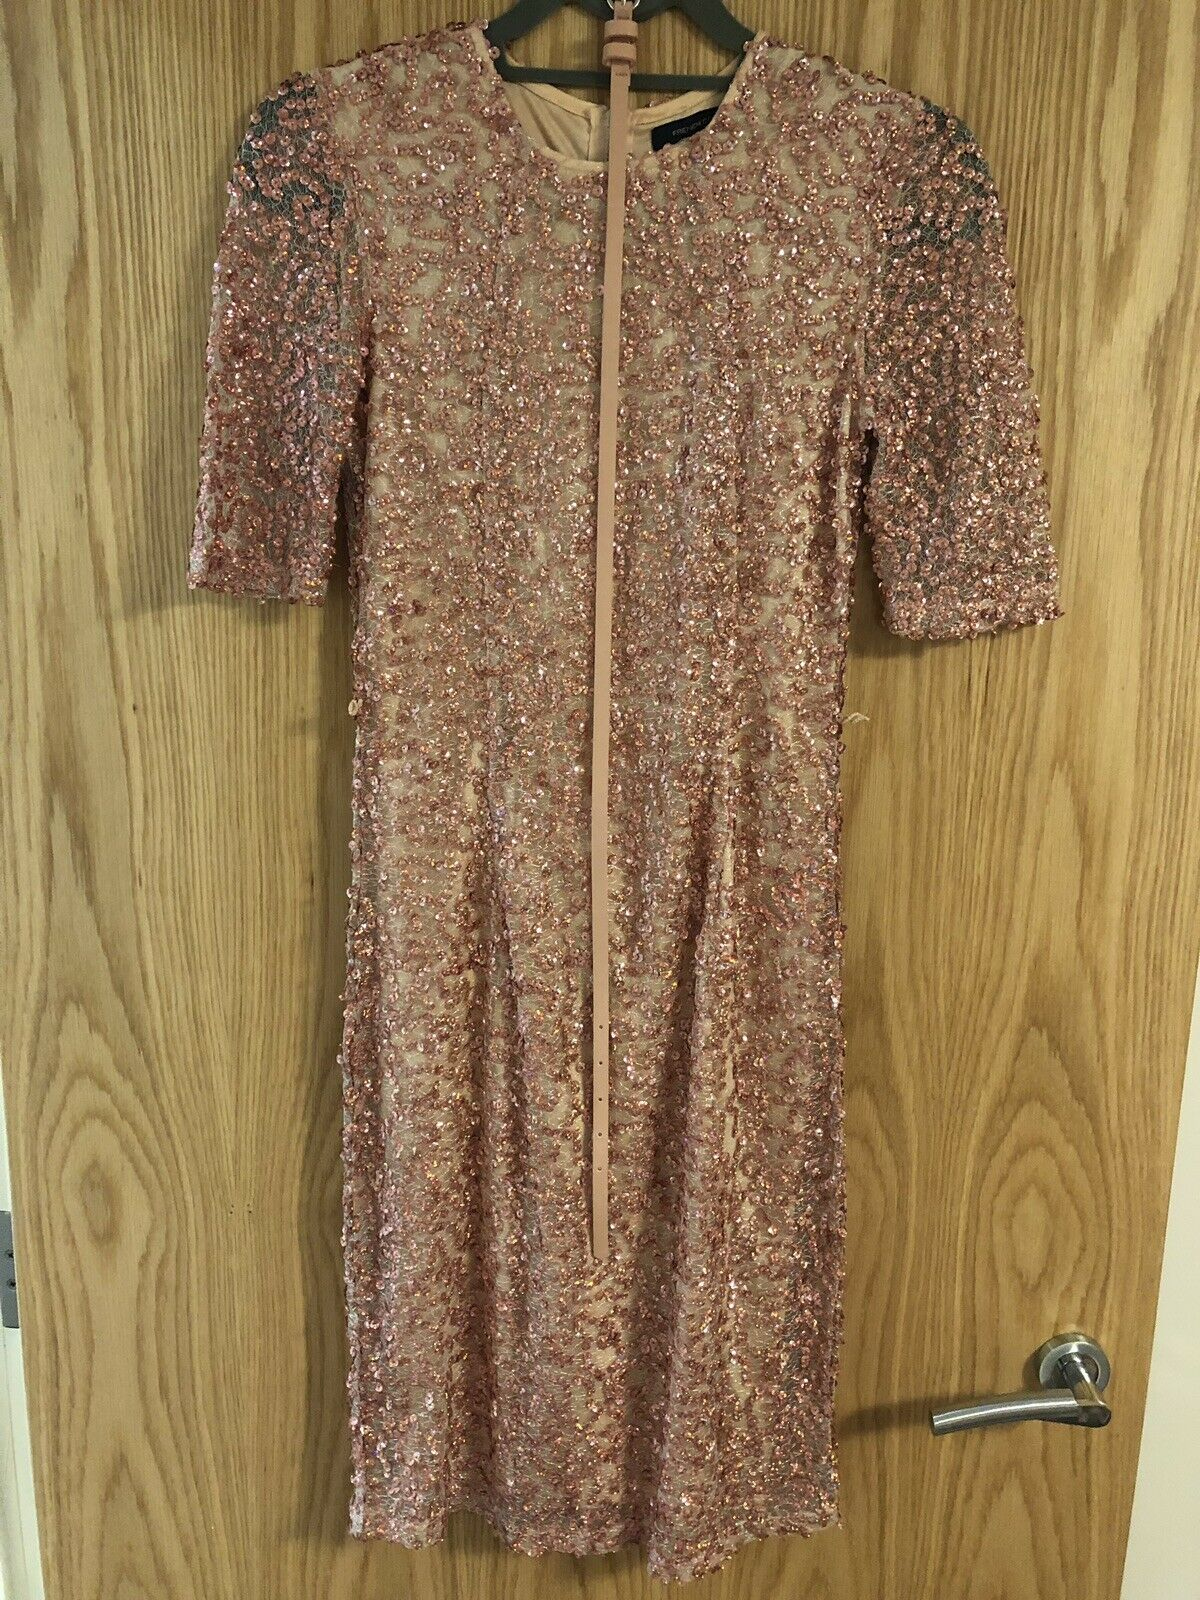 French connection sequin pink dress